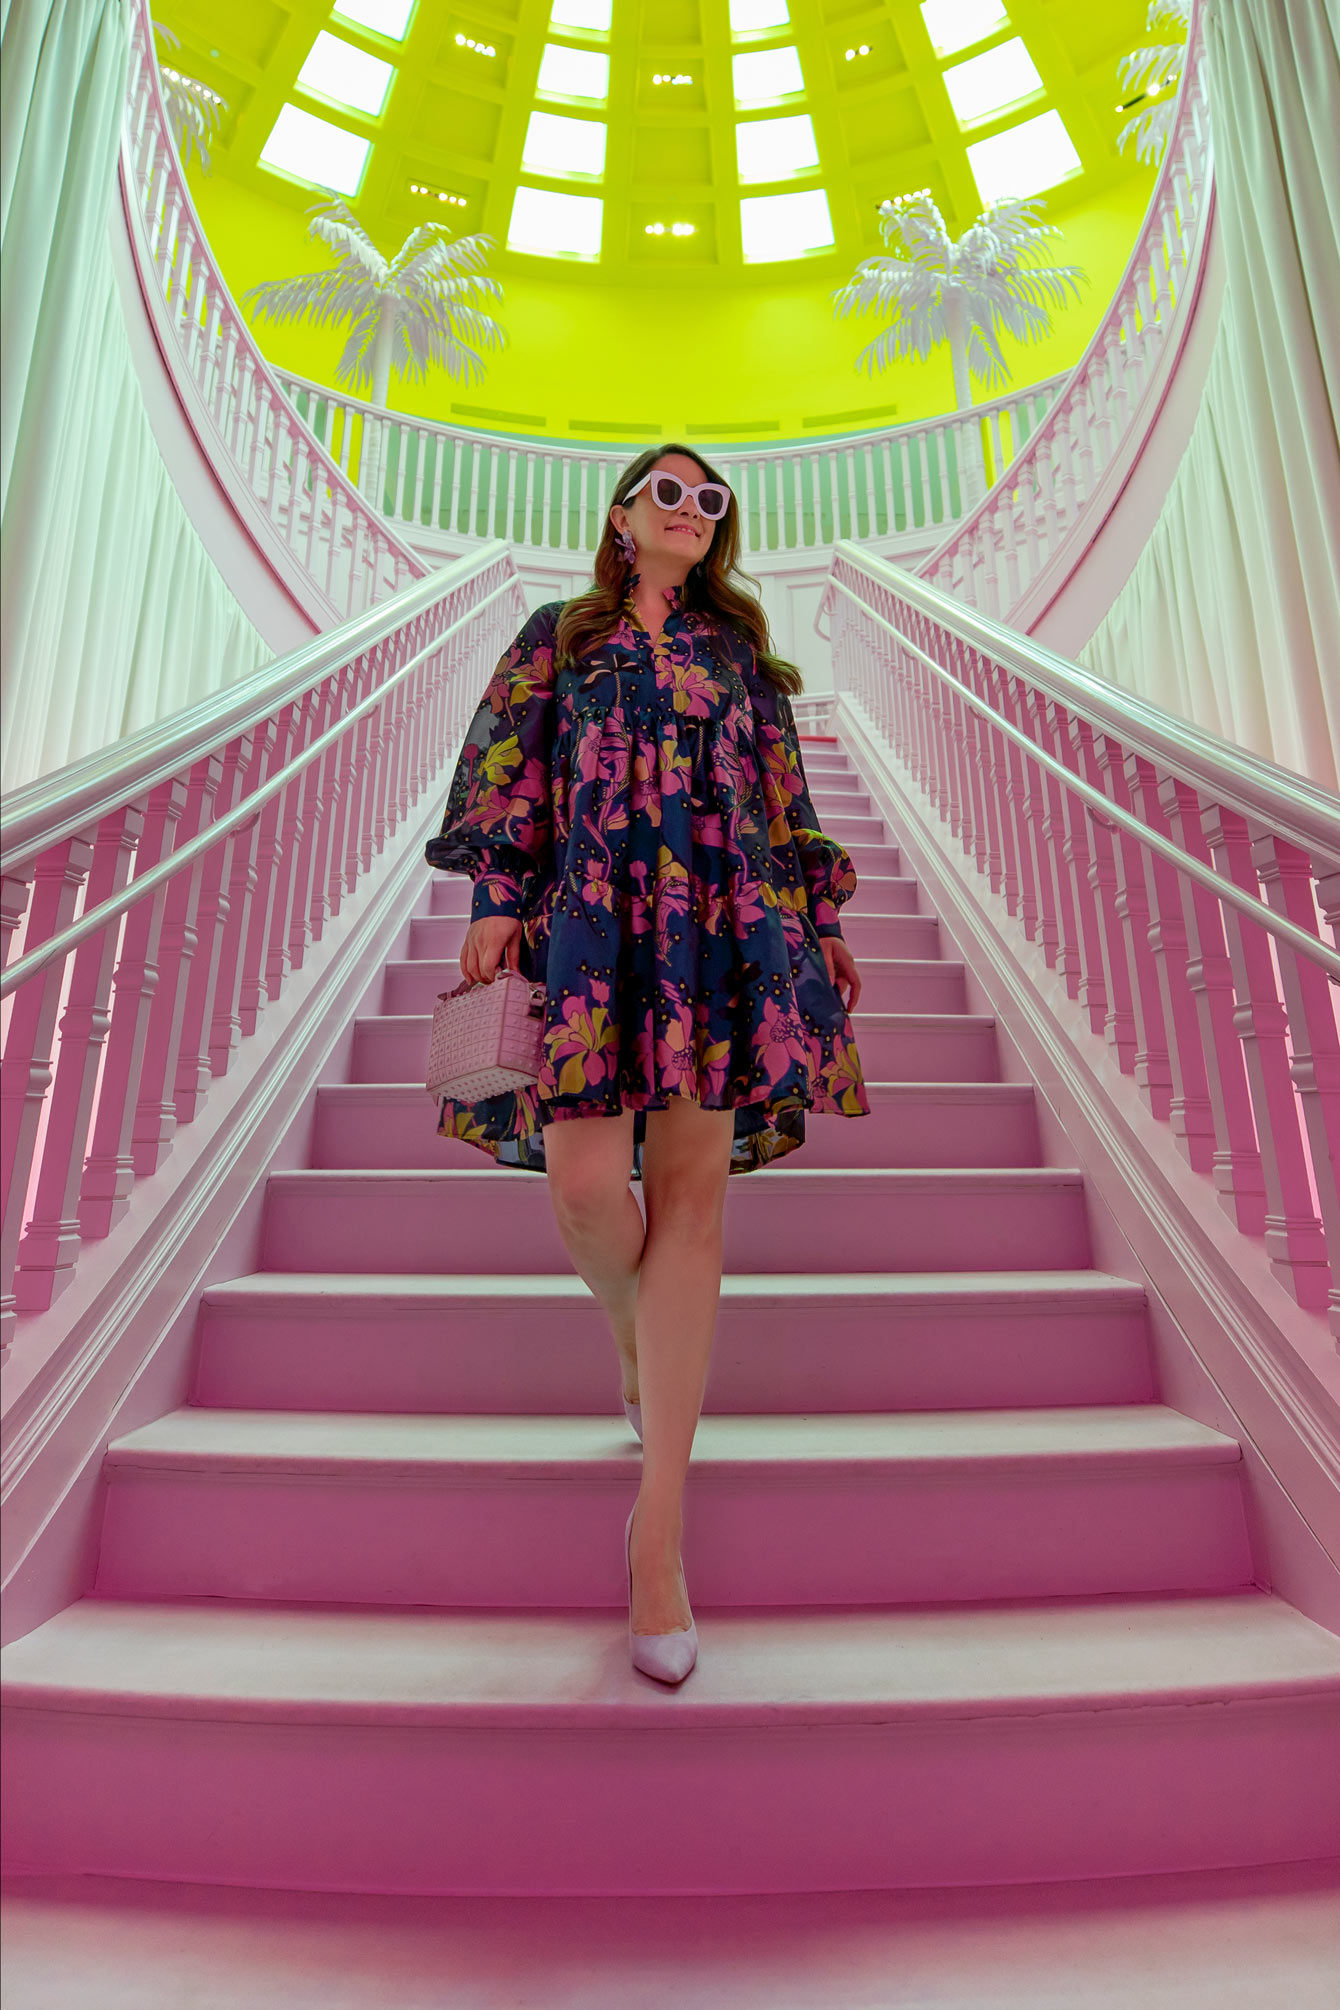 Louis Vuitton X Pink Staircase